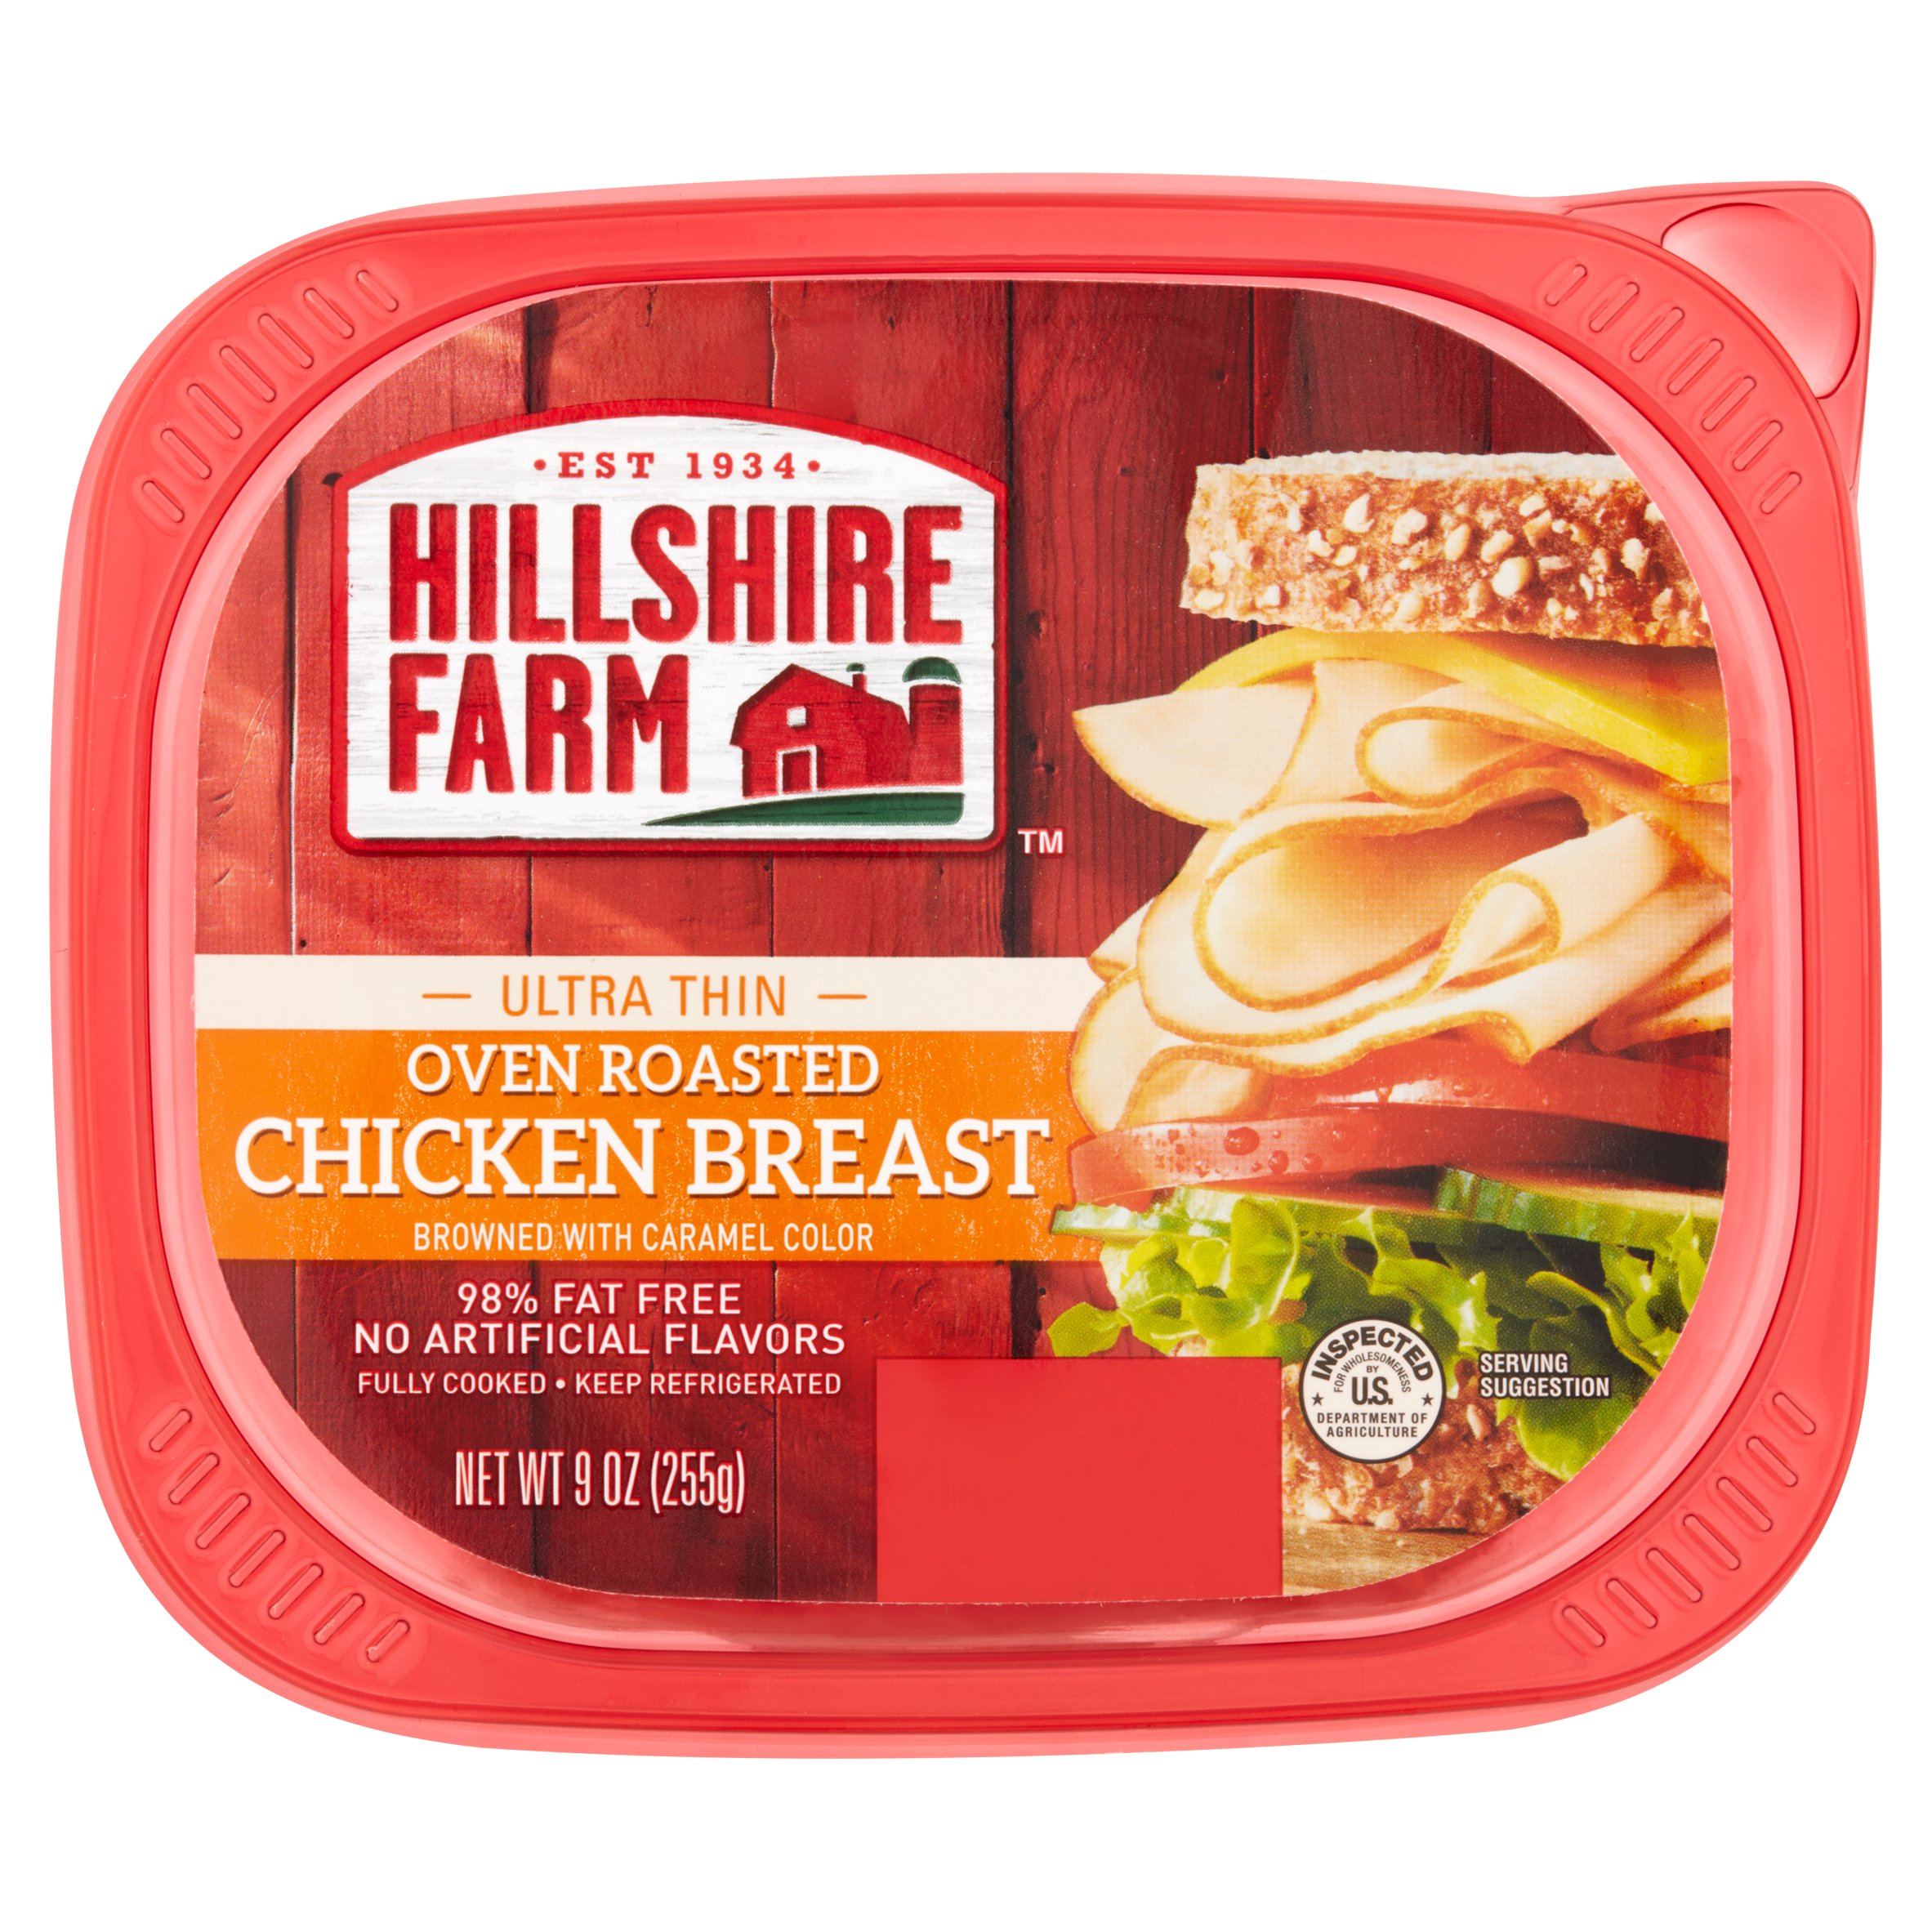 Hillshire Farm Ultra Thin Oven Roasted Chicken Breast, 9 oz